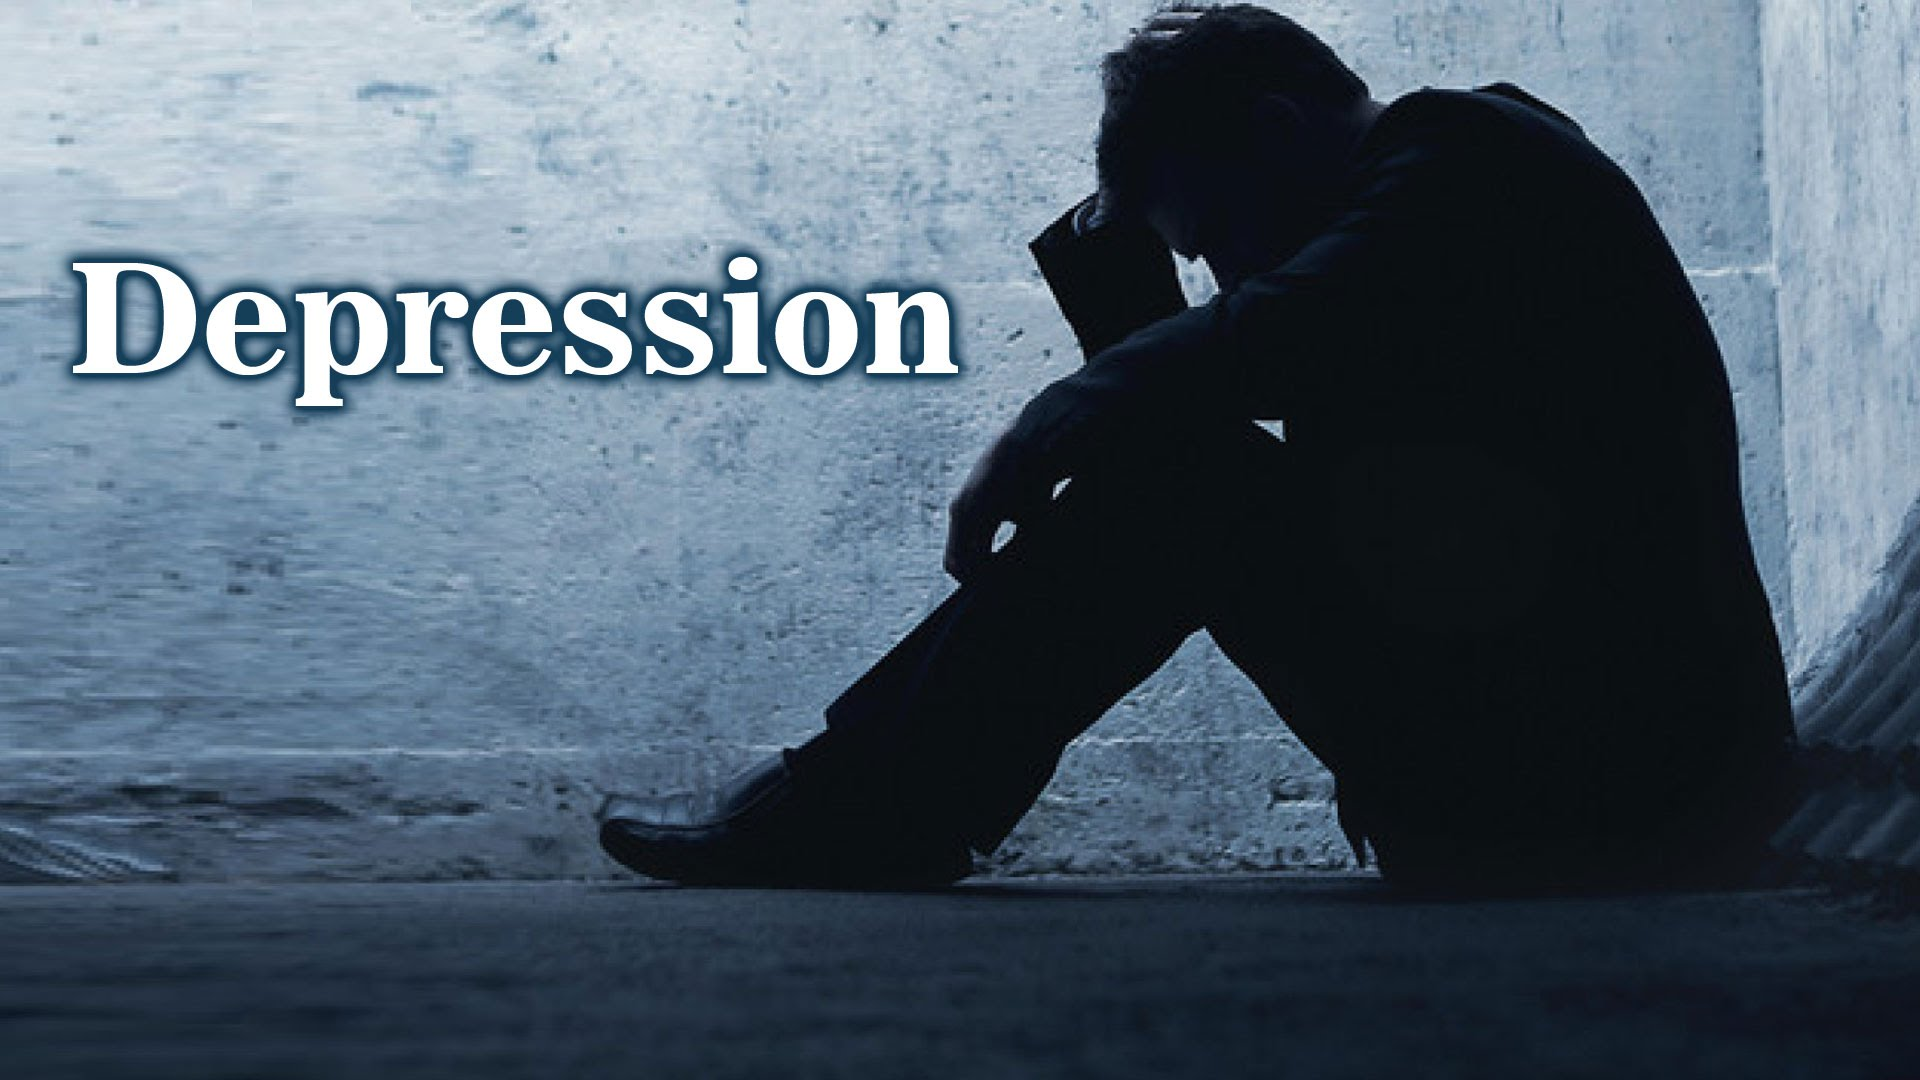 In this blog I'll give you a guide on how you can beat depression without a therapy session. This guide will help you through difficult times.